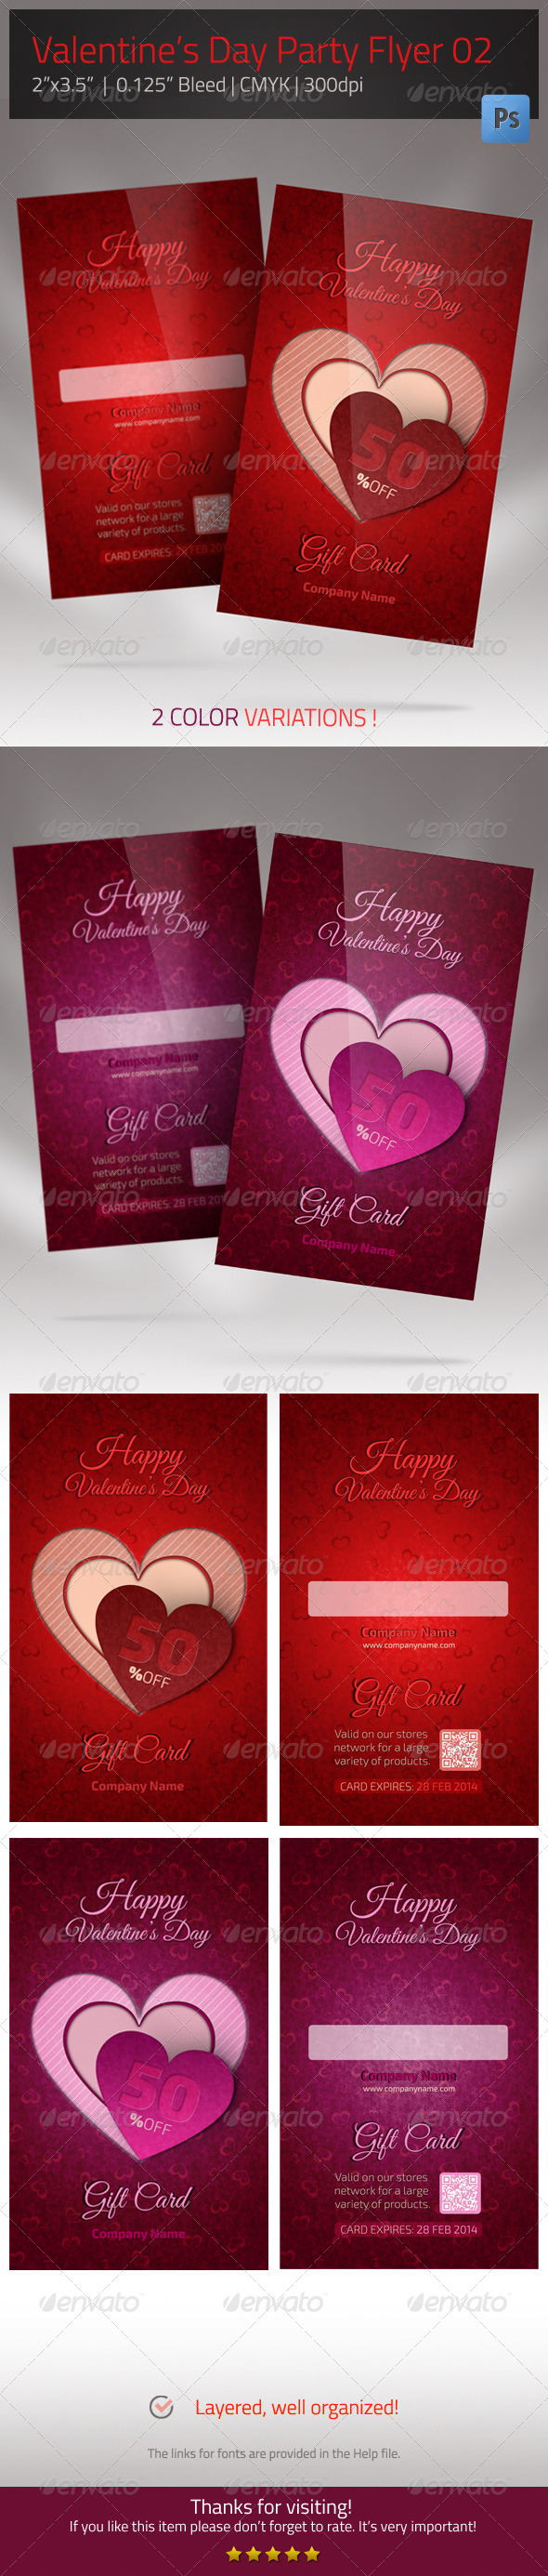 GraphicRiver Gift Card for Valentines Day 6668723